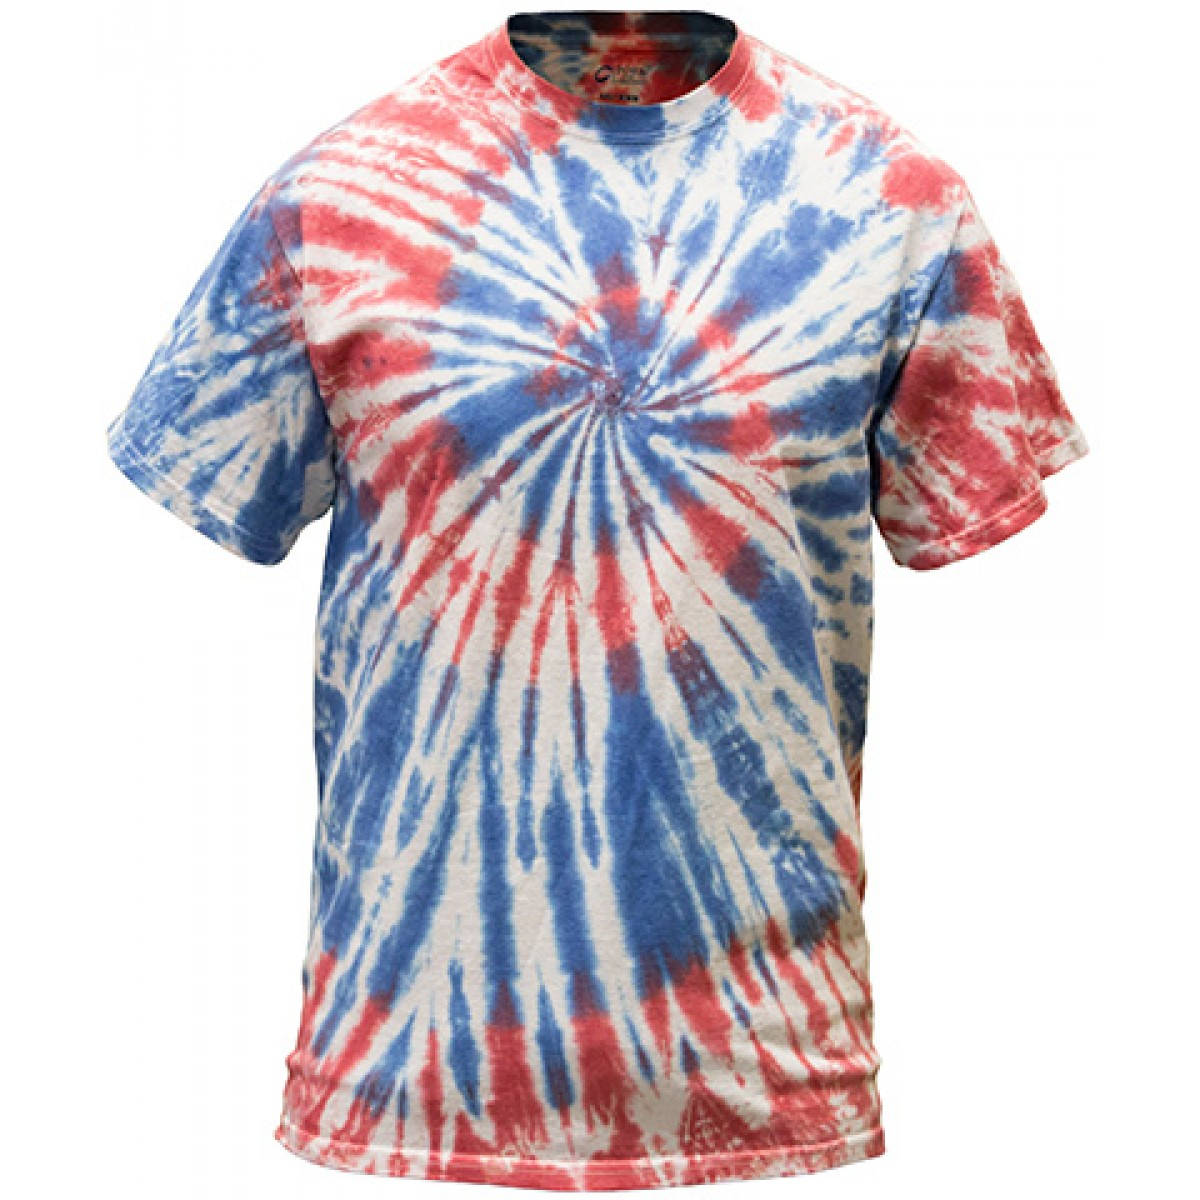 Multi-Color Tie-Dye Tee -Red/White/Blue-3XL